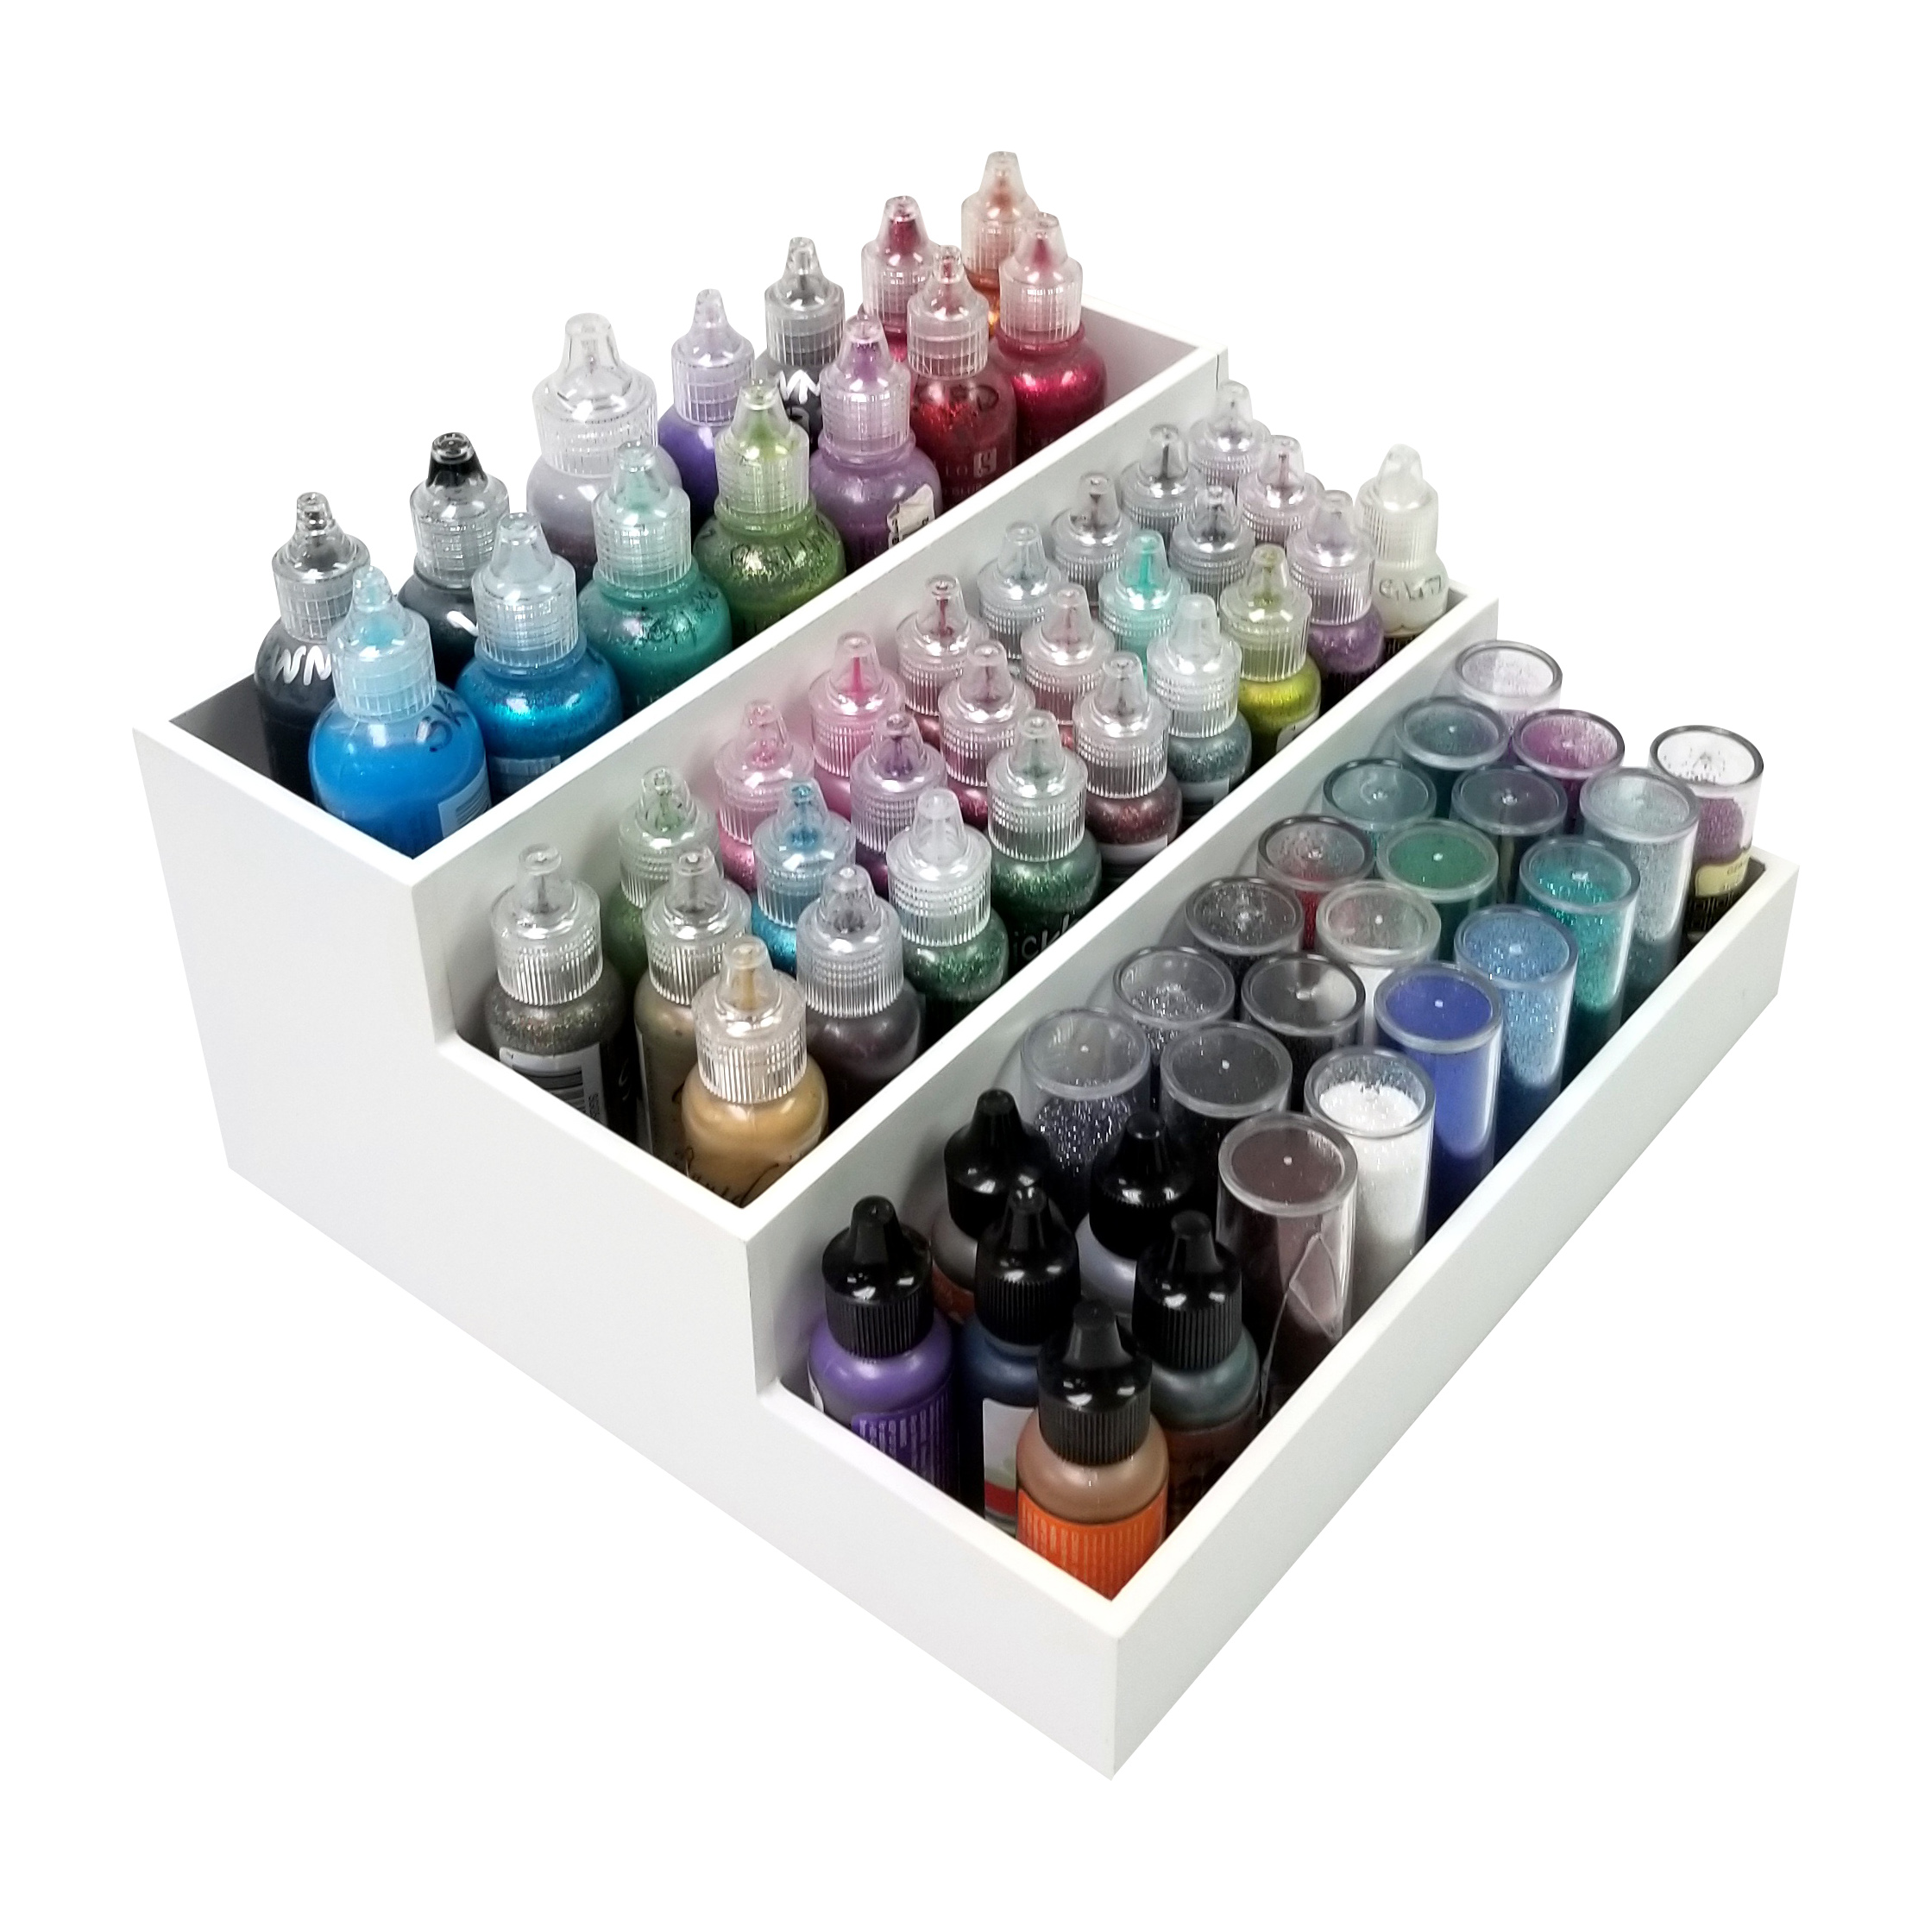 Organize stickles, glitter glue, re-inkers, glitter Desk Maid by Totally-Tiffany